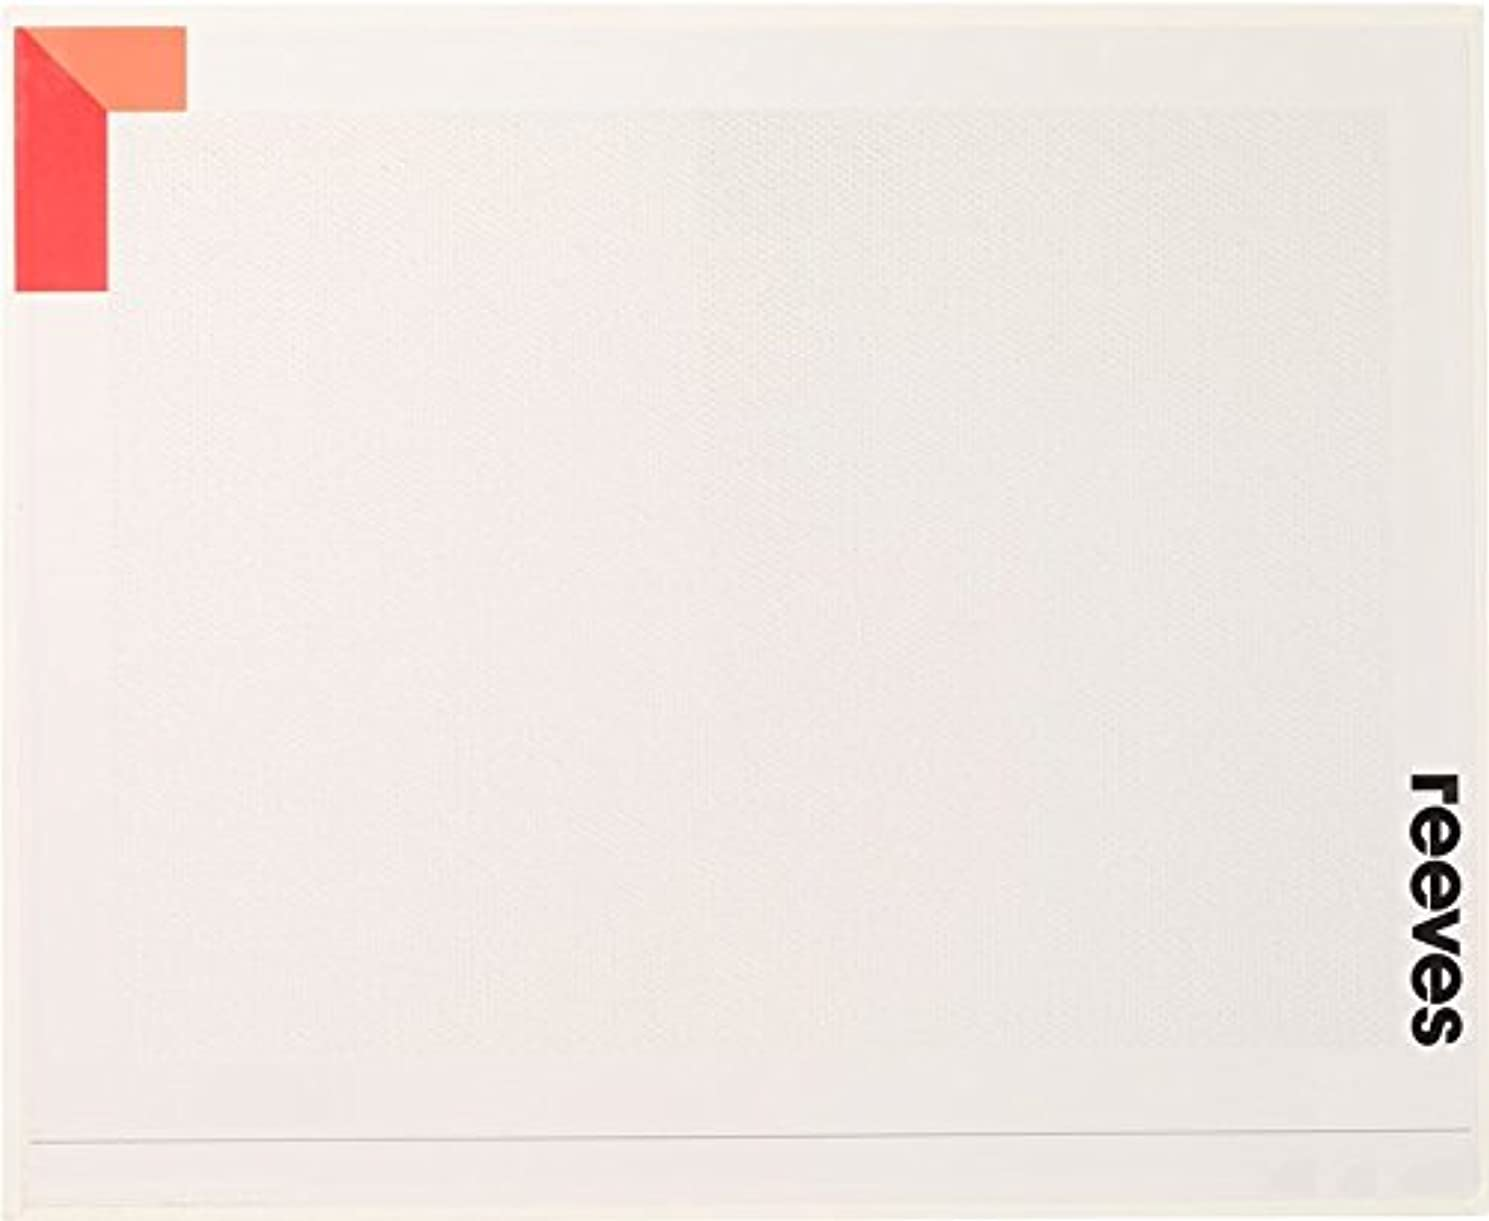 Reeves 8330830?Cotton Stretched Canvas Frame, 100% Cotton, Cotton, 3-er Pack Baumwoll-Keilrahmen, 30 x 40cm